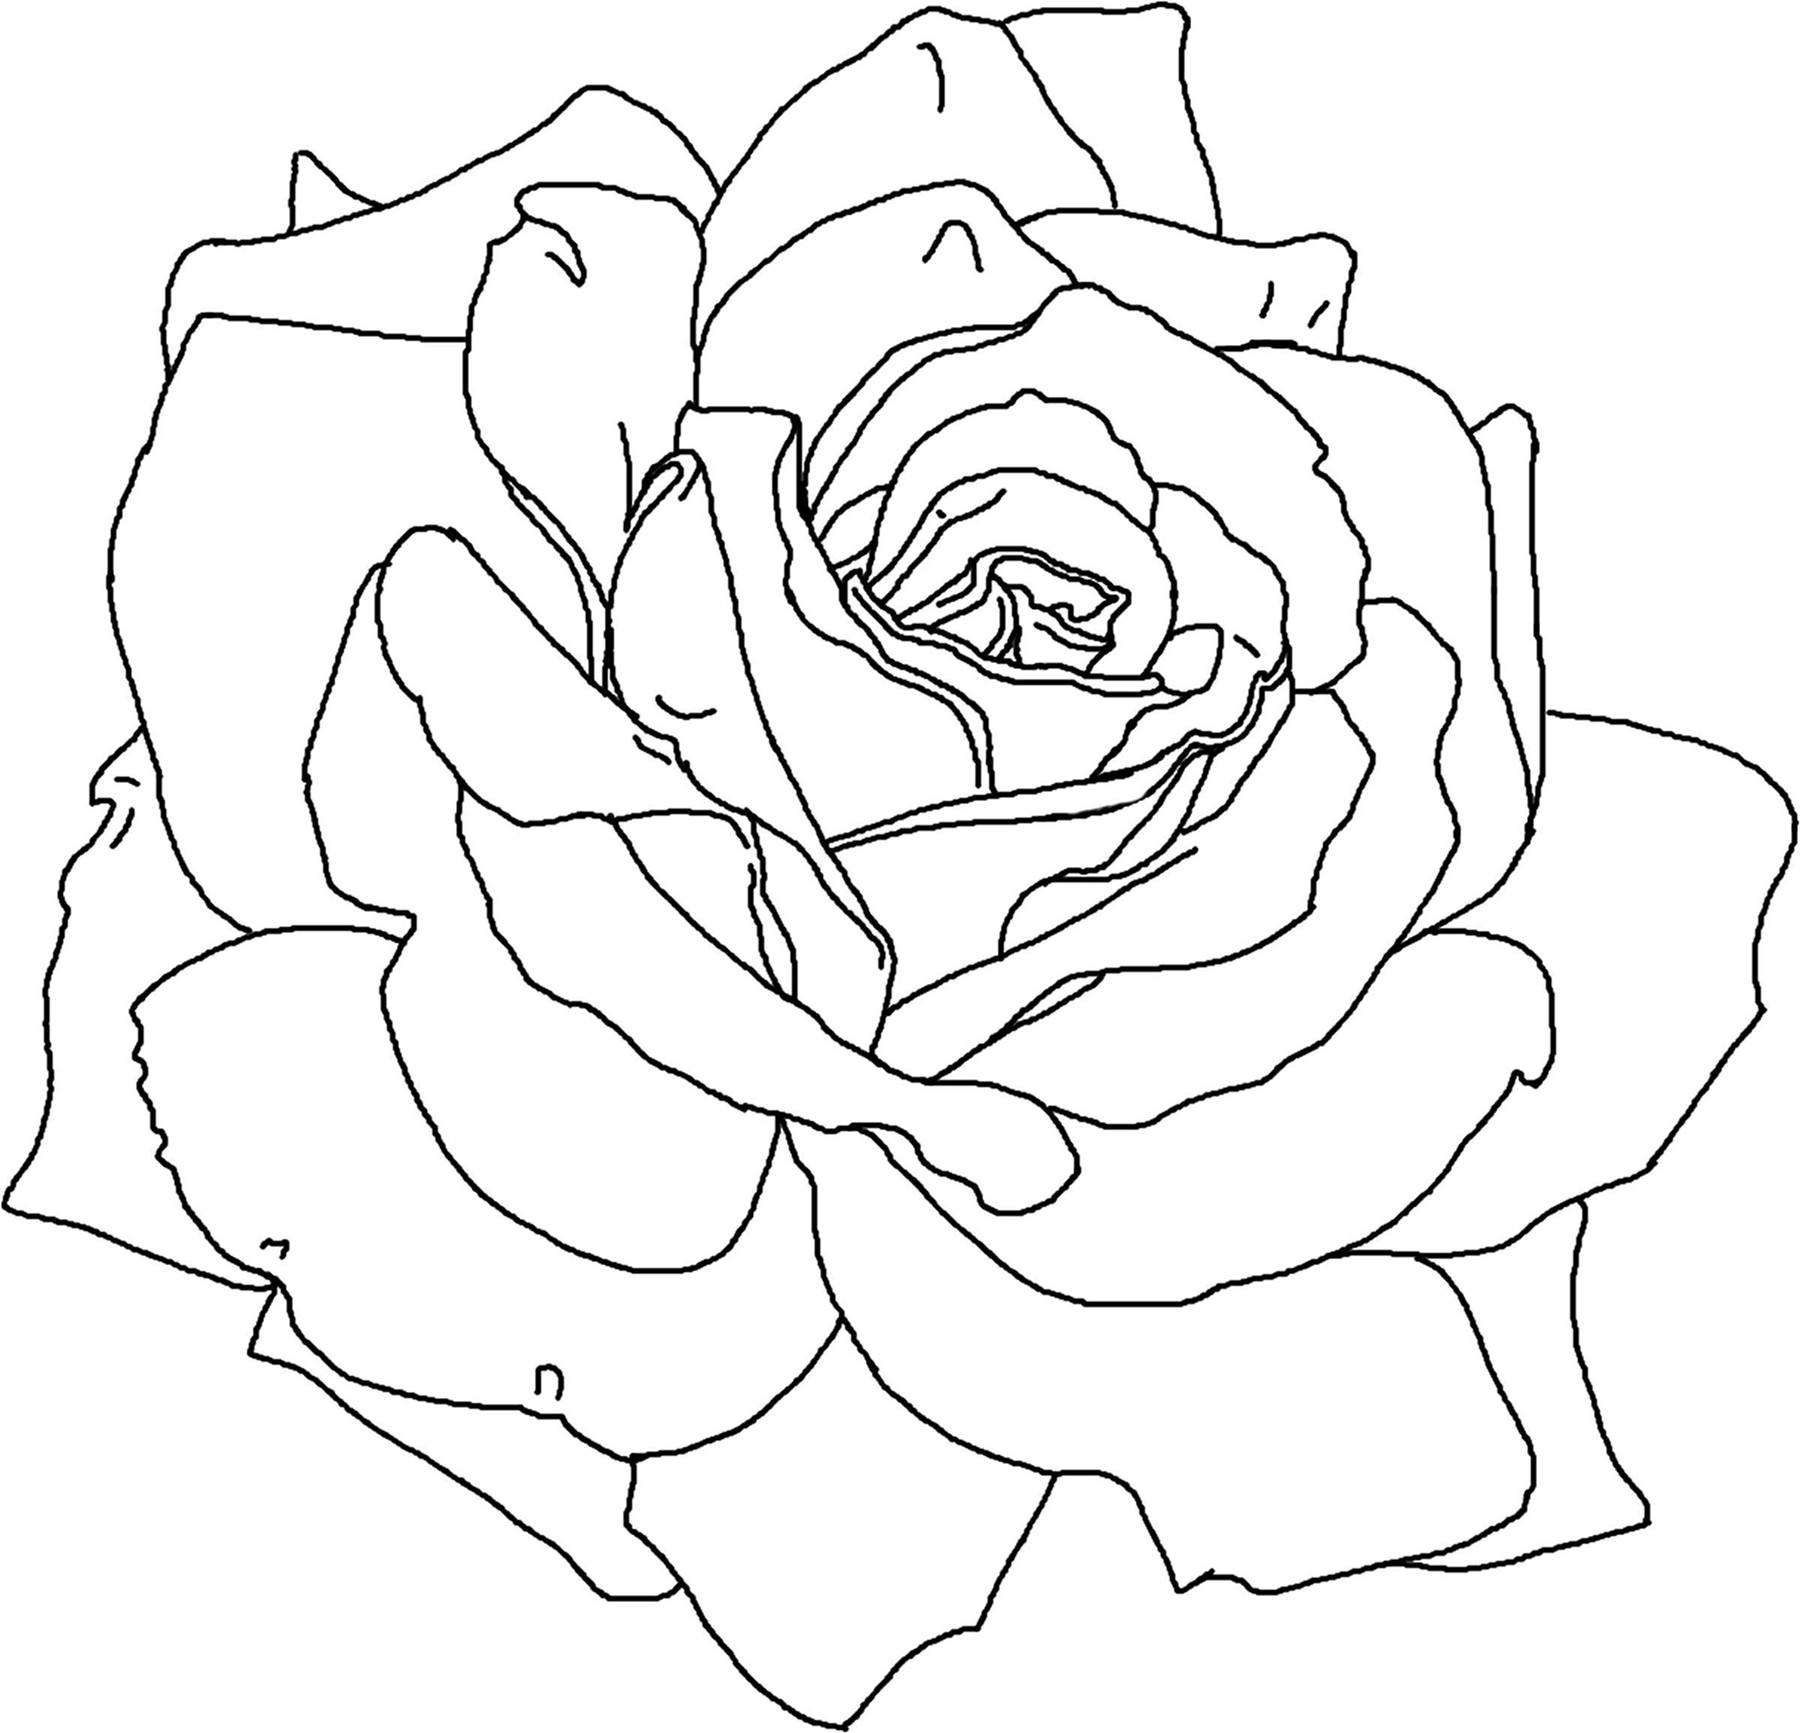 Best ideas about Free Coloring Pages Roses . Save or Pin Free Printable Flower Coloring Pages For Kids Best Now.